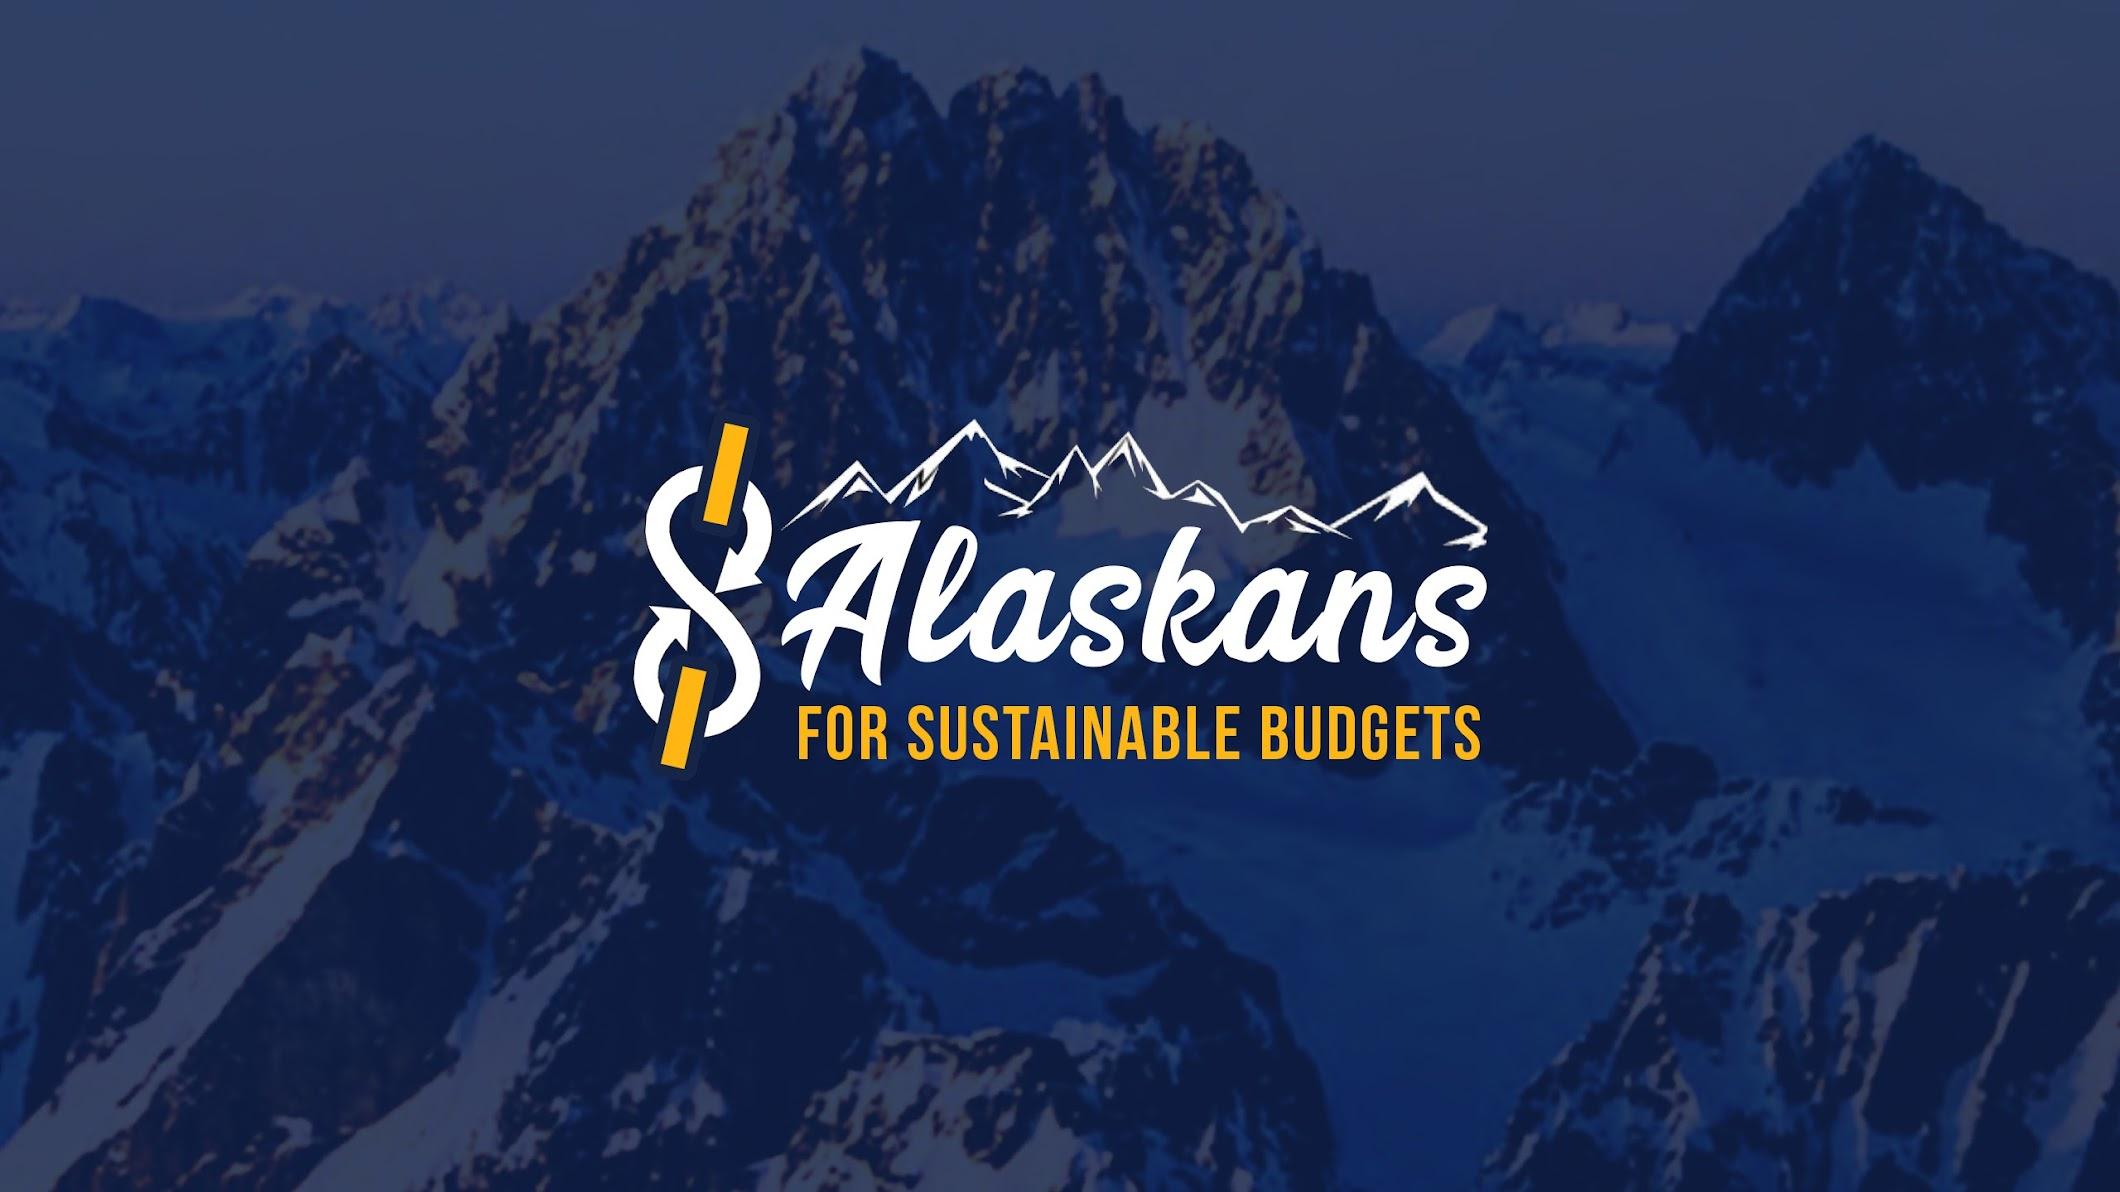 Alaskans for Sustainable Budgets